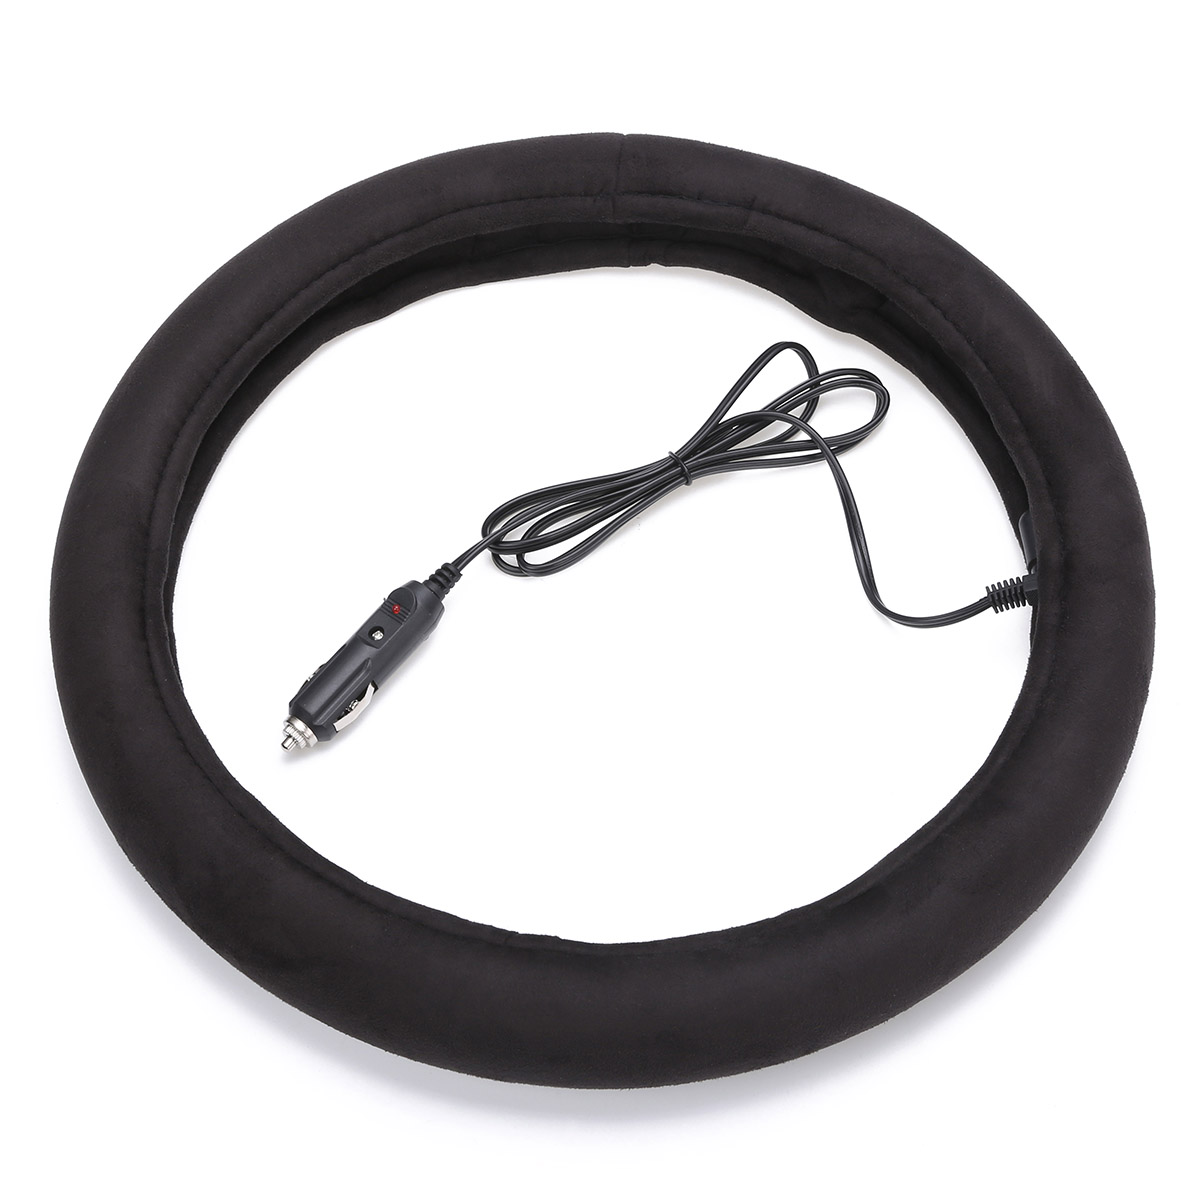 Universal 15Inch 38CM Flexible Winter Heated Steering Wheel Cover Heater Electric Car Lighter Plug Car Winter Heated Covers